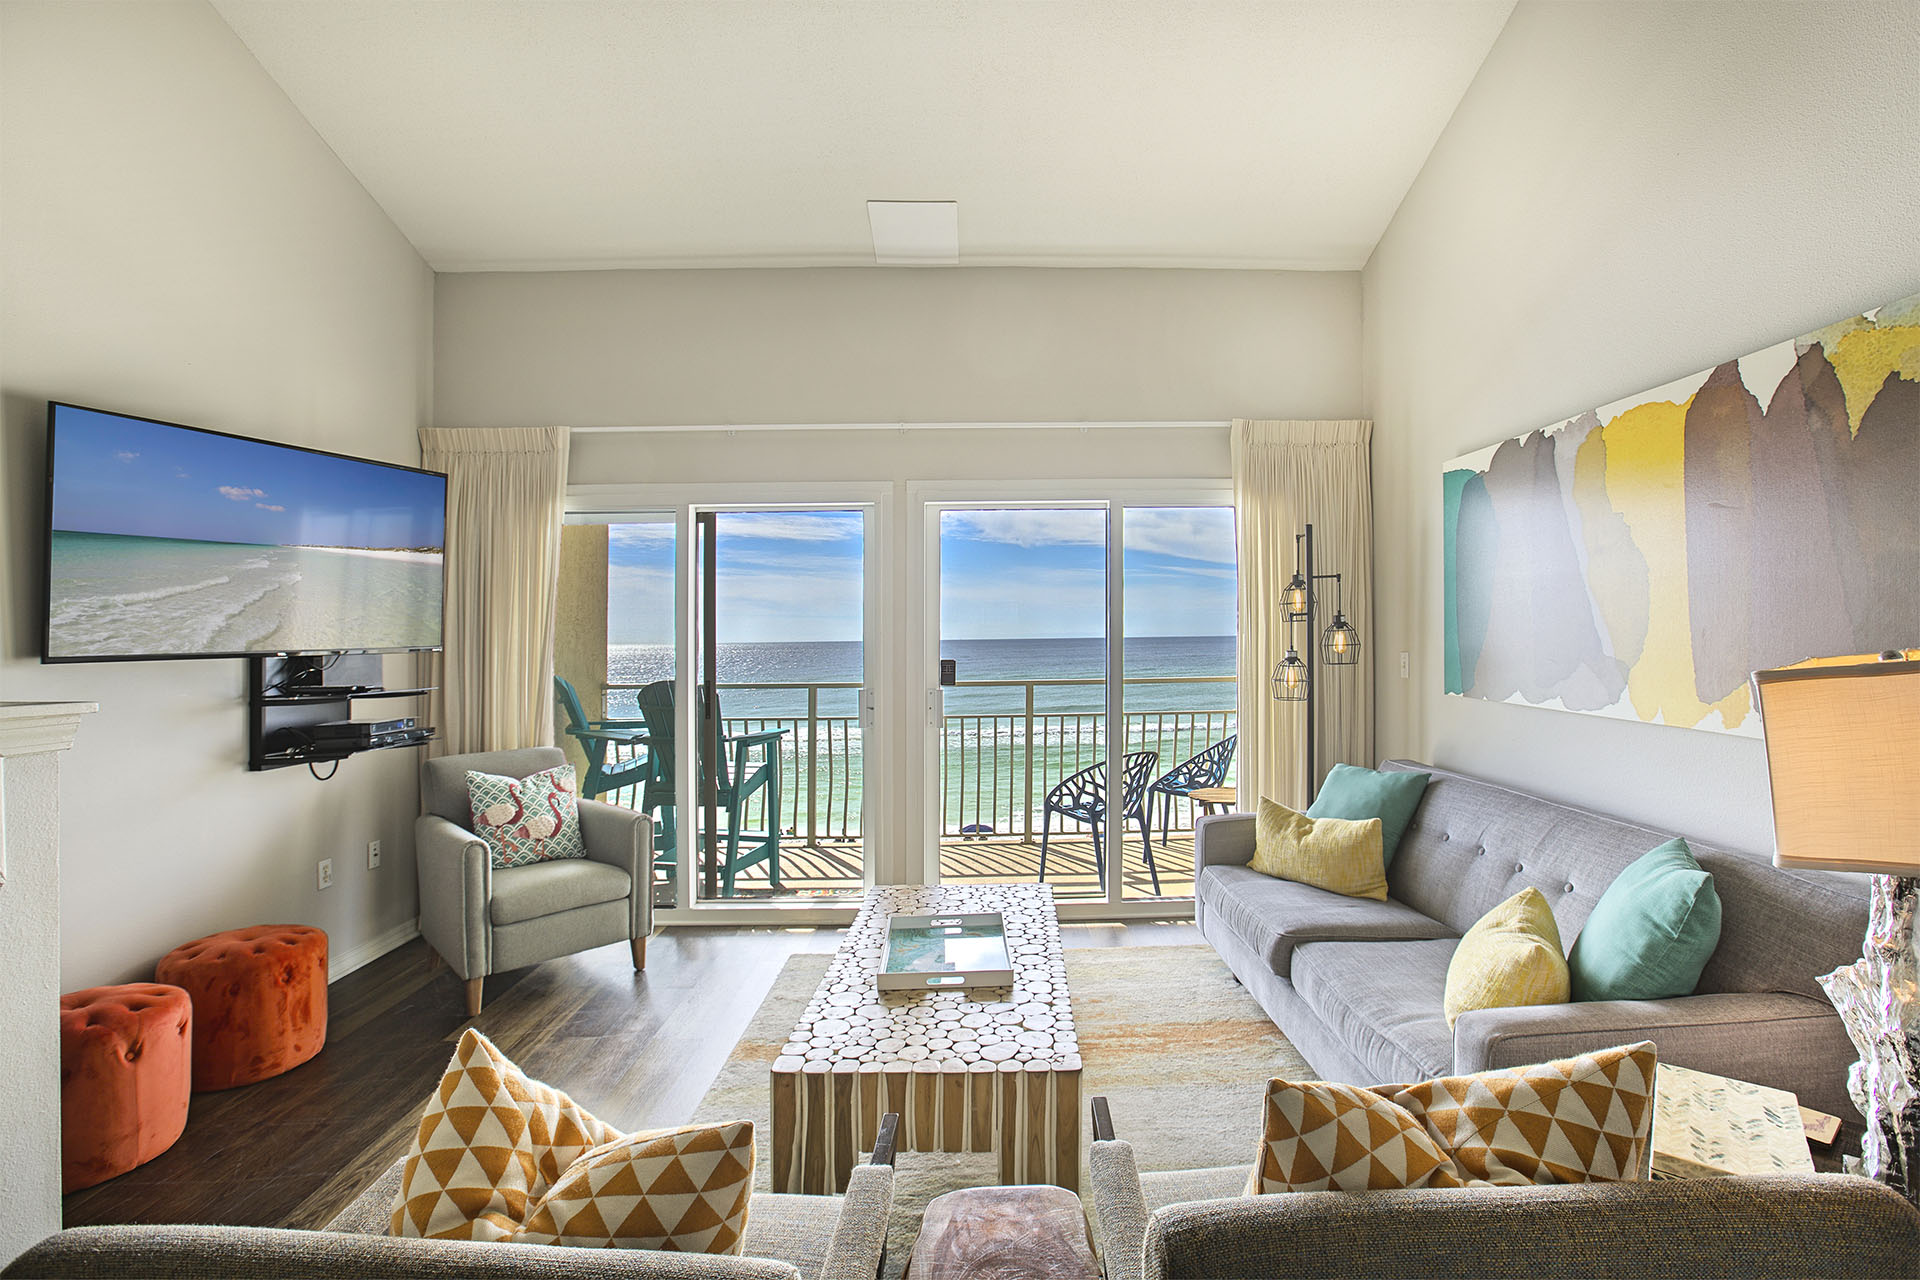 Crystal Sands 308b Destin 2 Bedroom 2 Full Bathroom Beachfront Place To Stay On Vacation 90750 Find Rentals